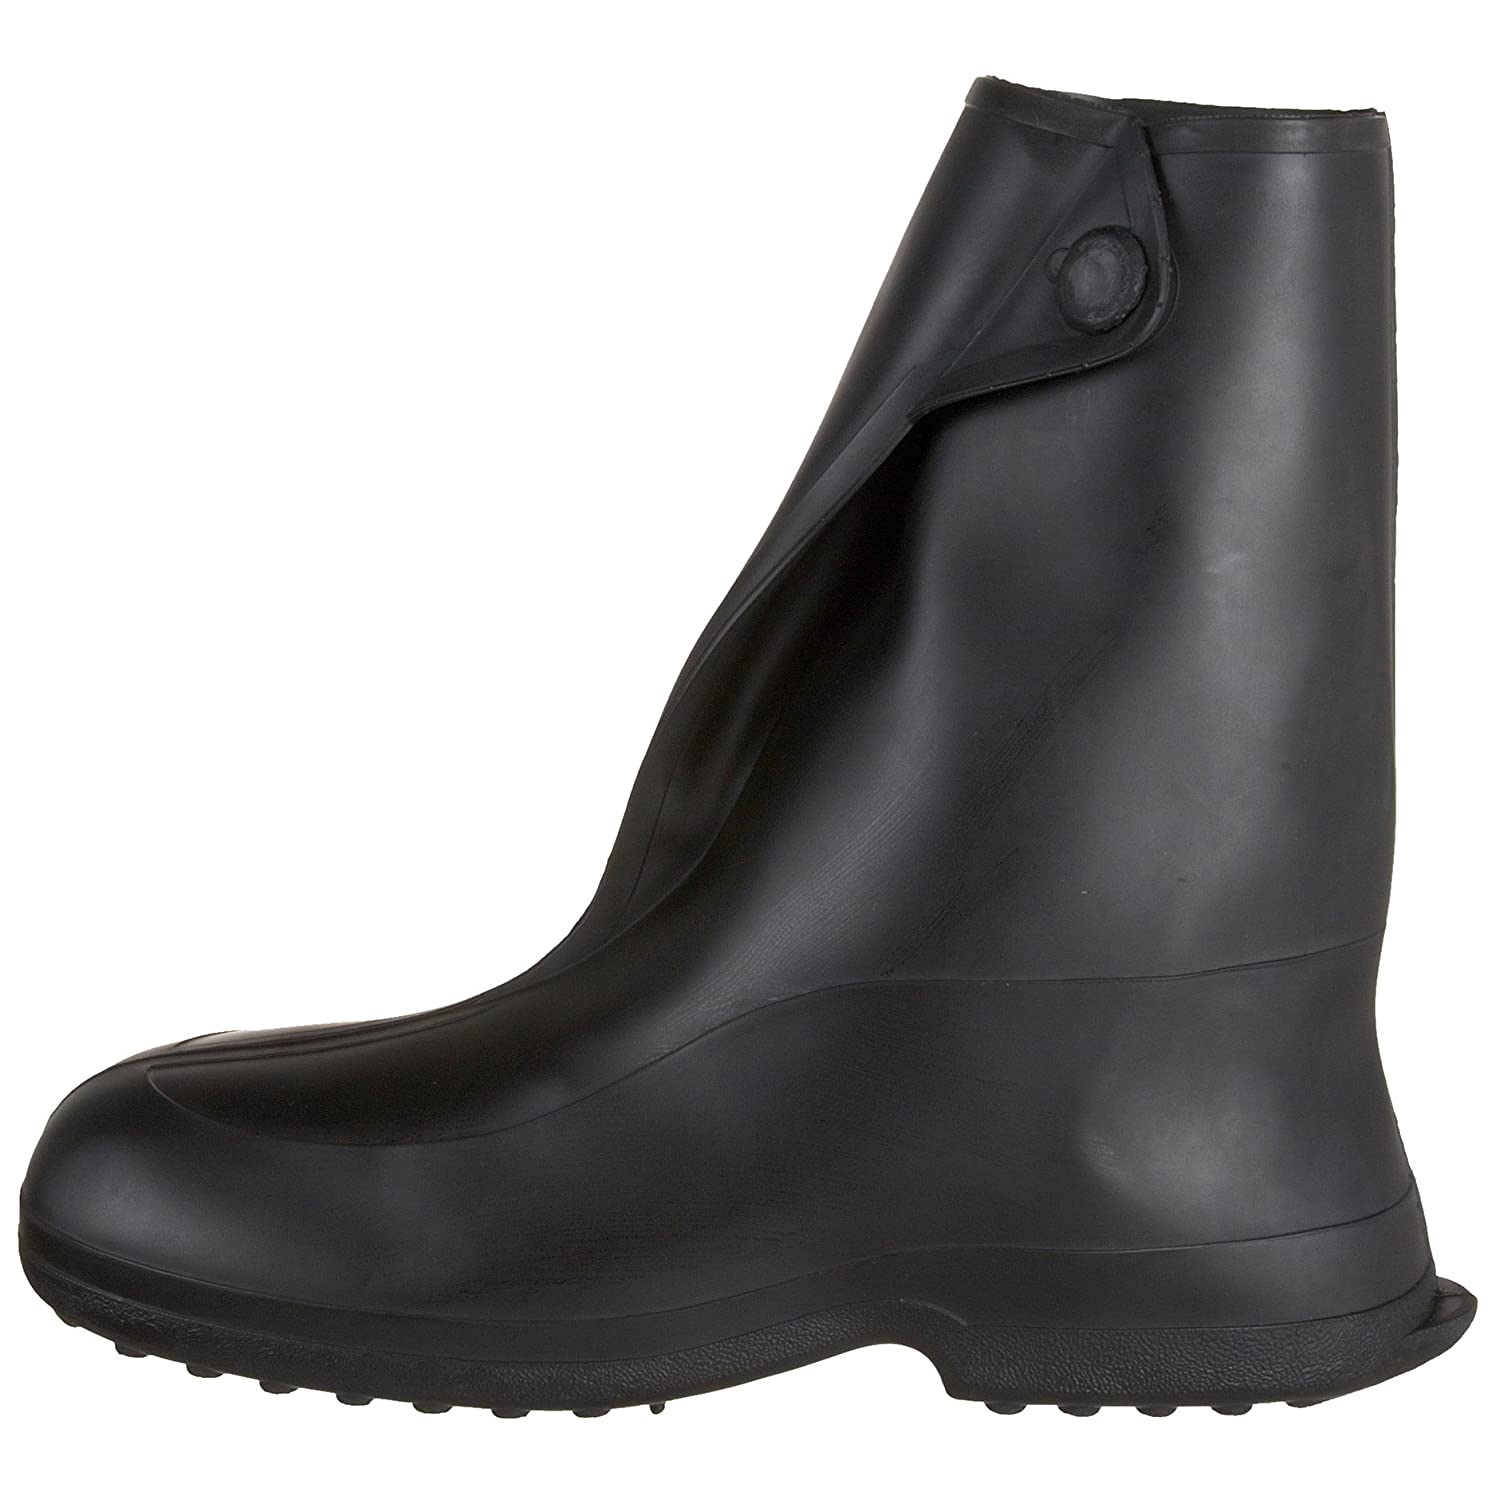 Retro Boots, Granny Boots, 70s Boots Tingley Mens 1400 Pull-on Work Overboot $52.47 AT vintagedancer.com